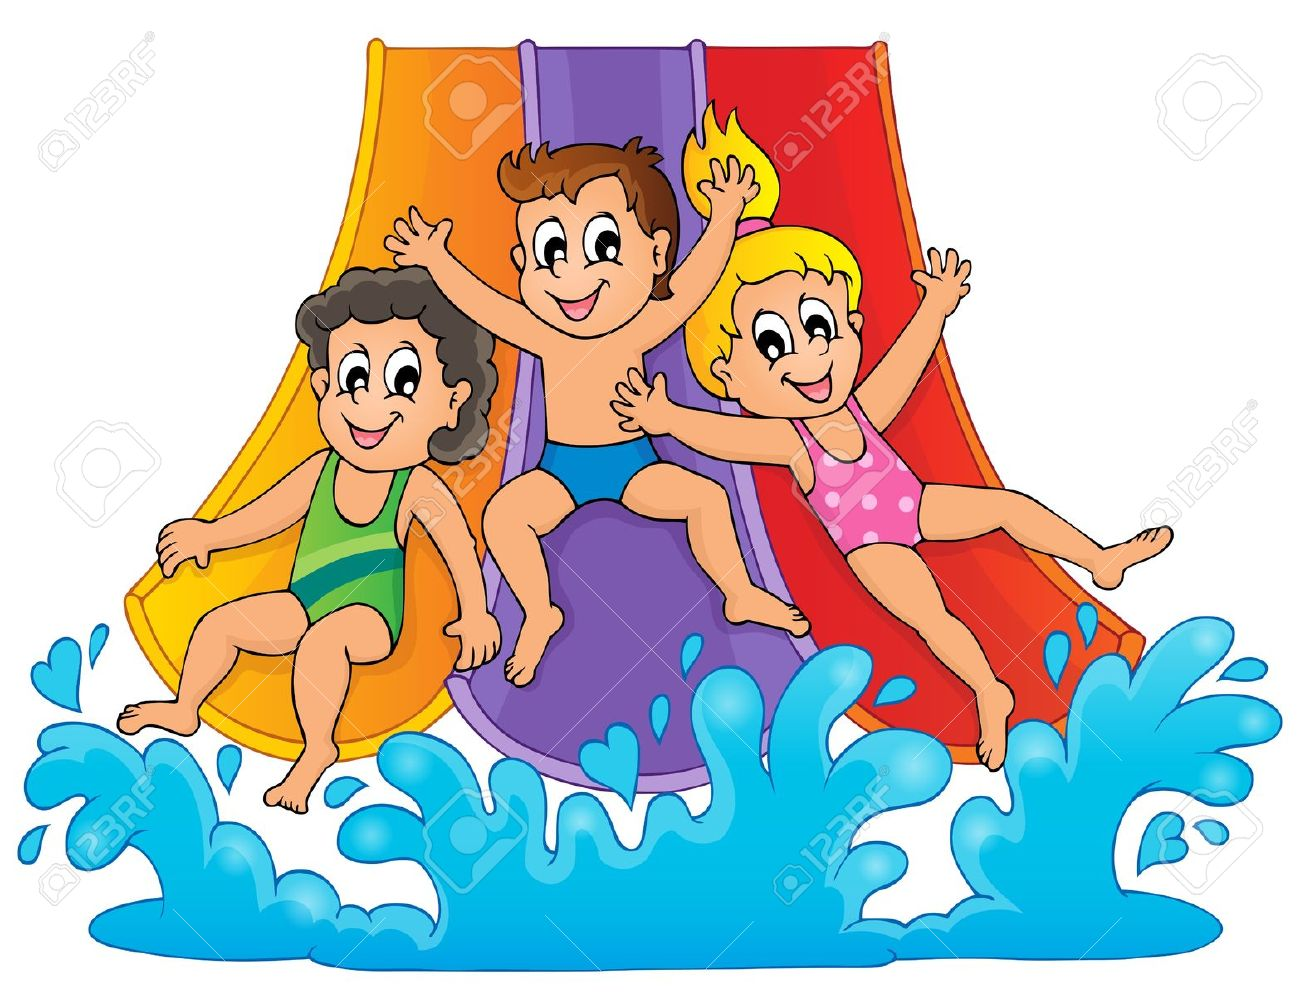 Water park clipart images svg library 23+ Water Park Clip Art | ClipartLook svg library